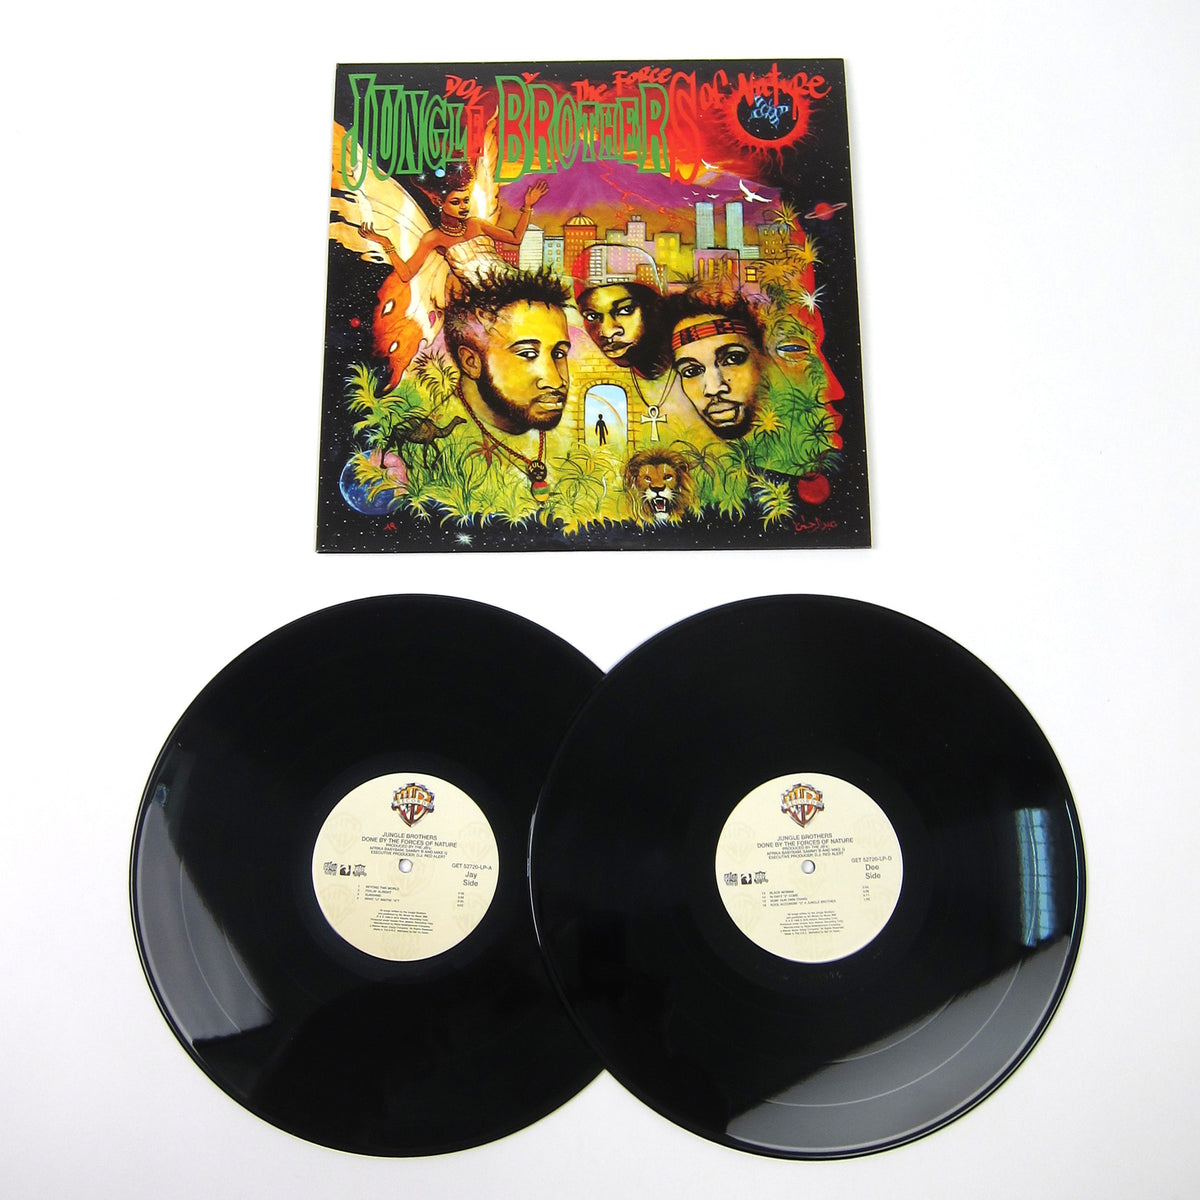 Jungle Brothers: Done By The Forces Of Nature Vinyl 2LP (Record Store Day)